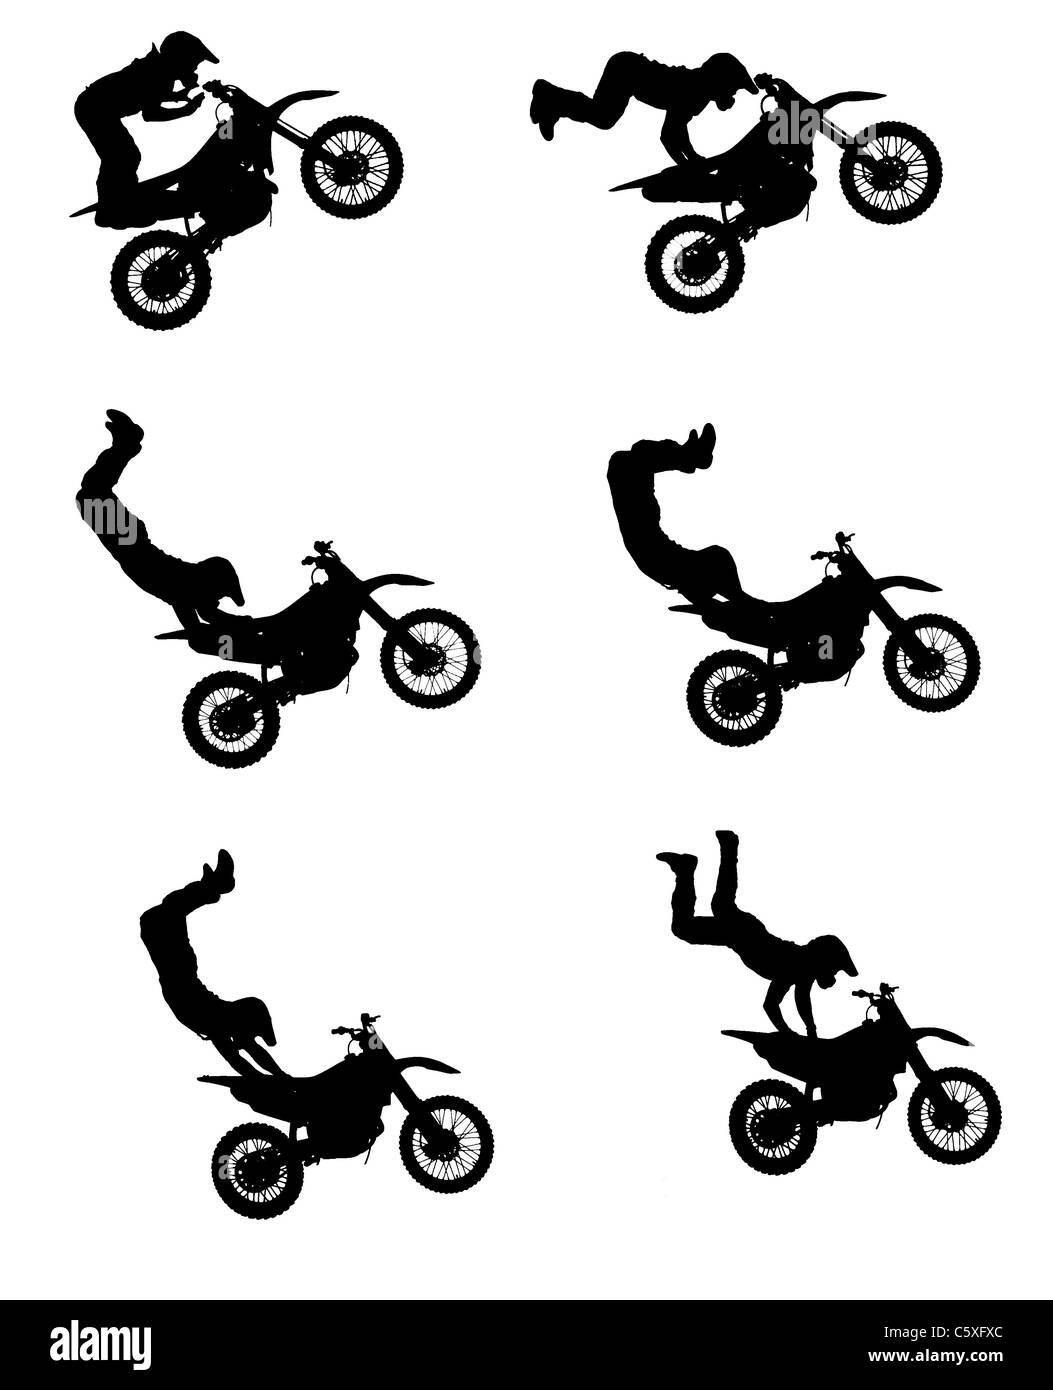 motorbike stunt rider black and white stock photos images alamy